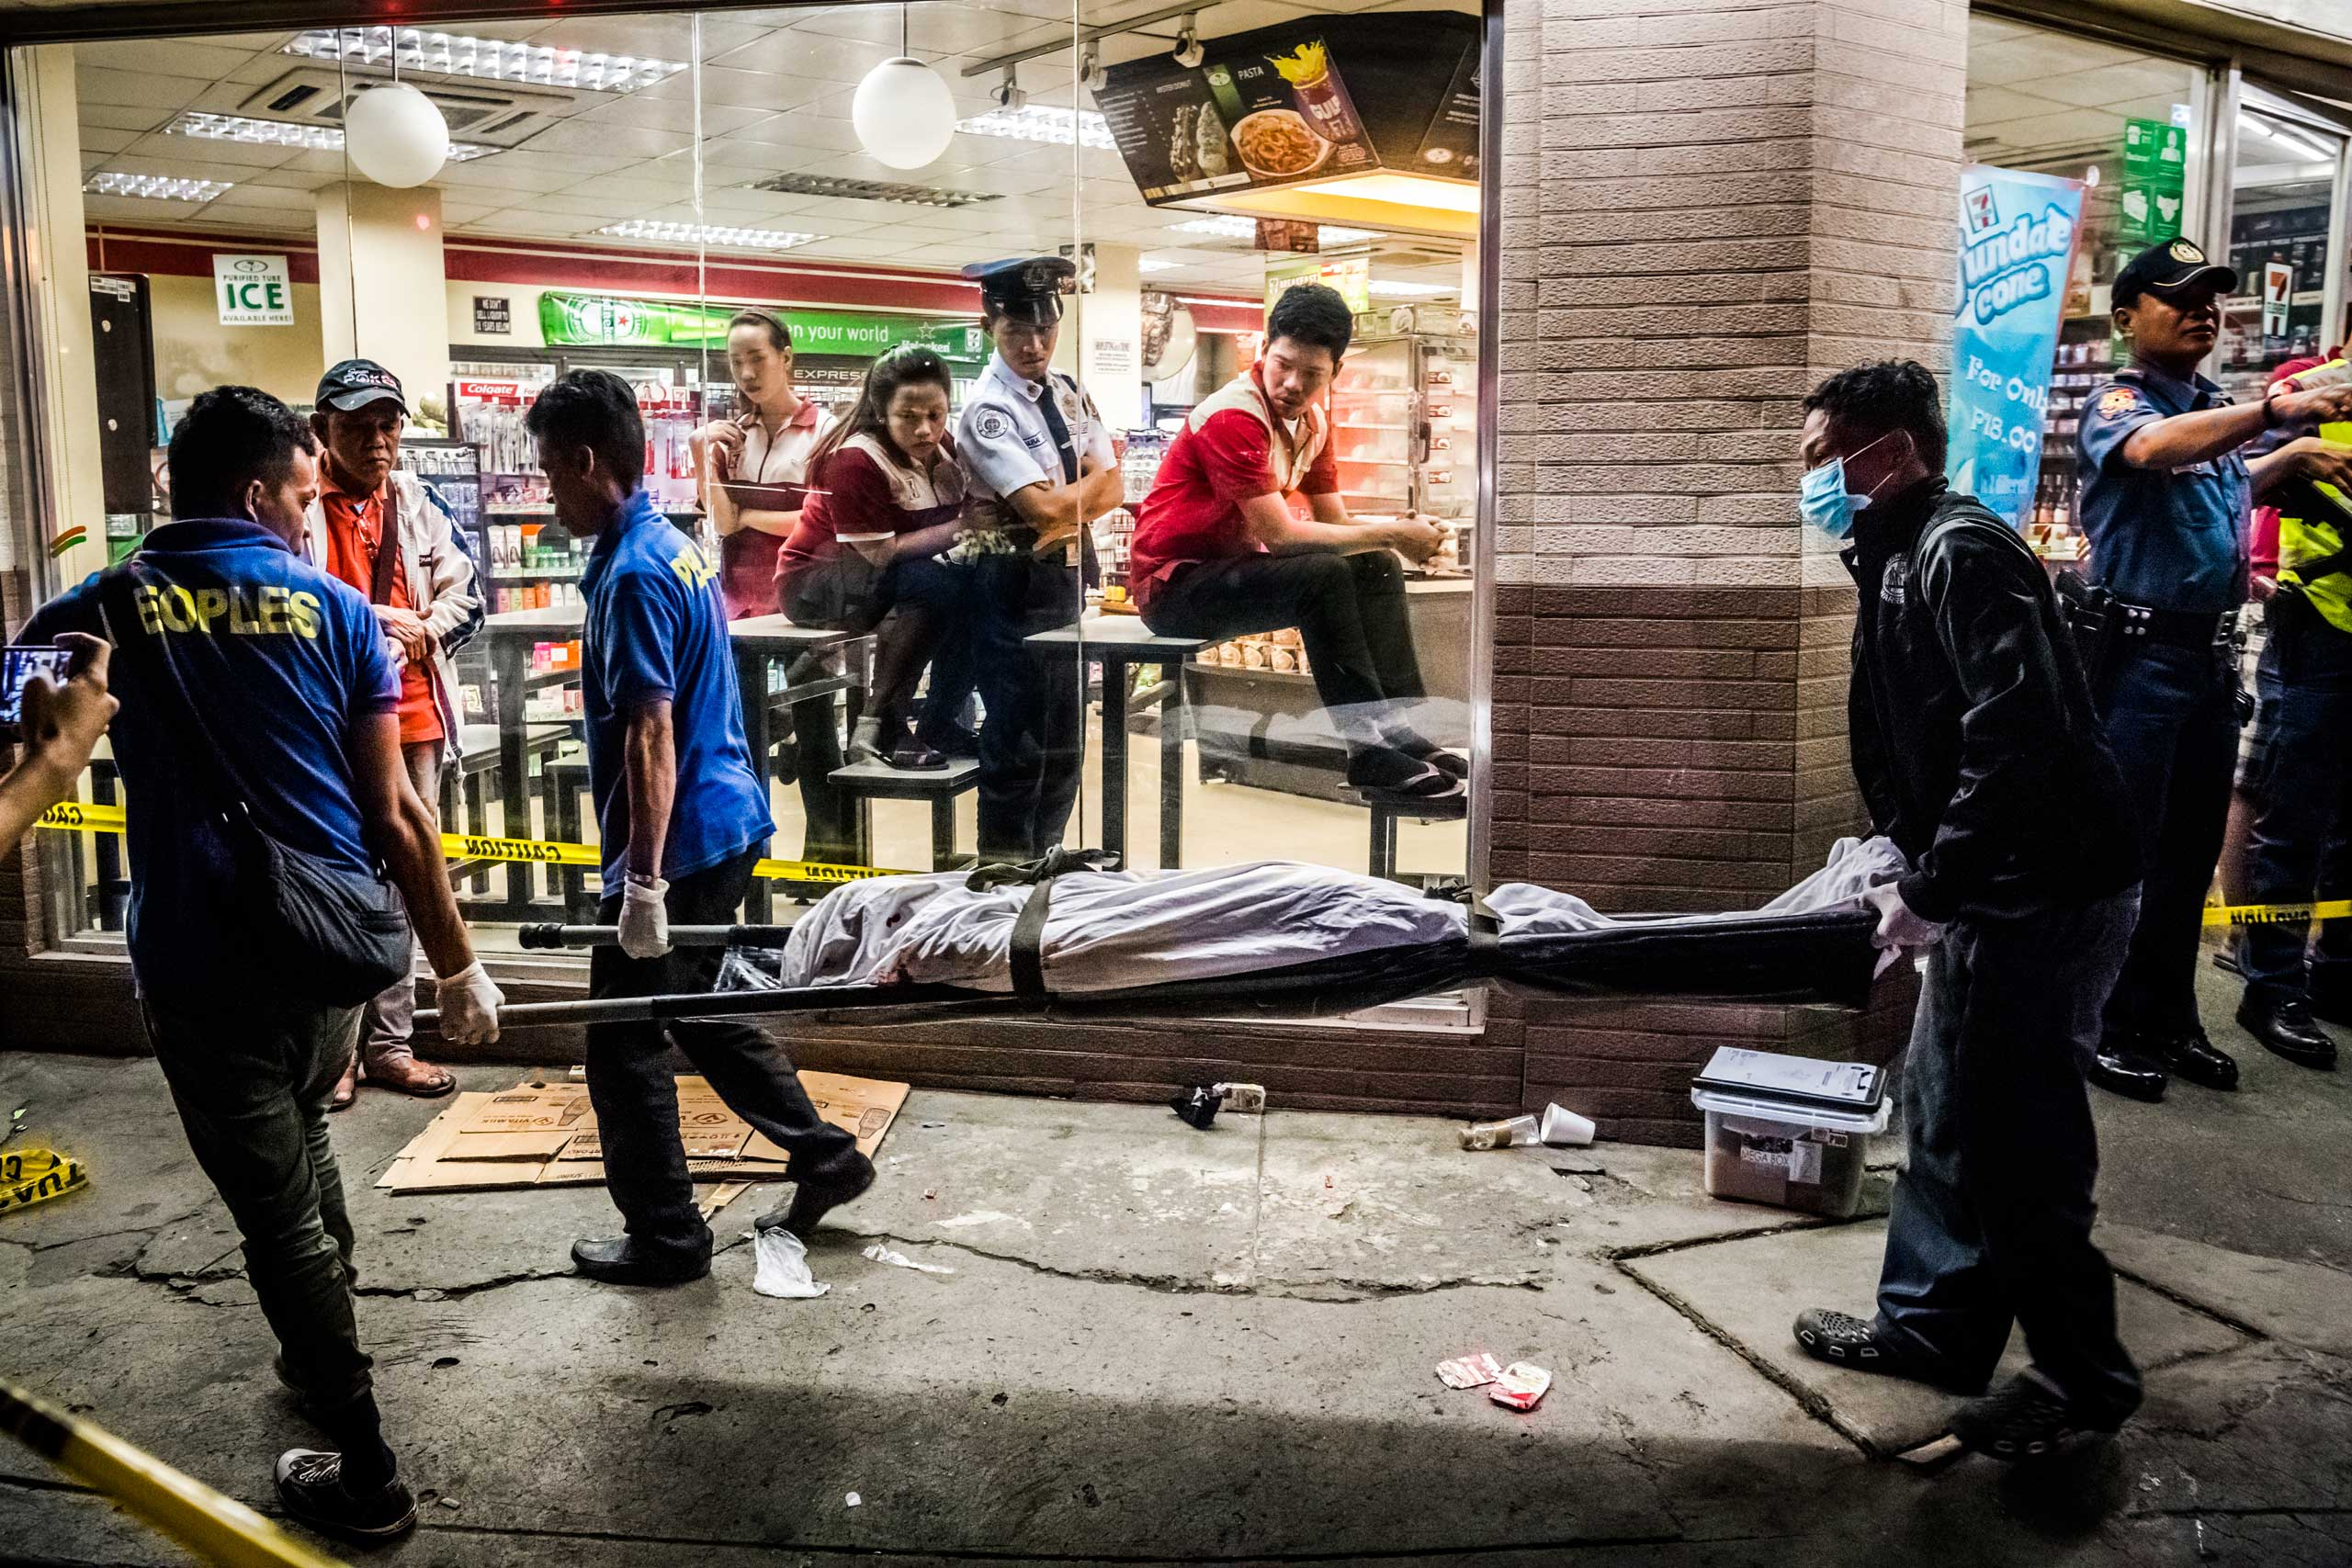 Funeral parlor workers carry away the body of Edwin Mendoza Alon-Alon, 36, who was killed by an unknown gunman on the road in front of a 7-Eleven store in Tambo on Oct. 18, 2016 in Manila, Philippines.